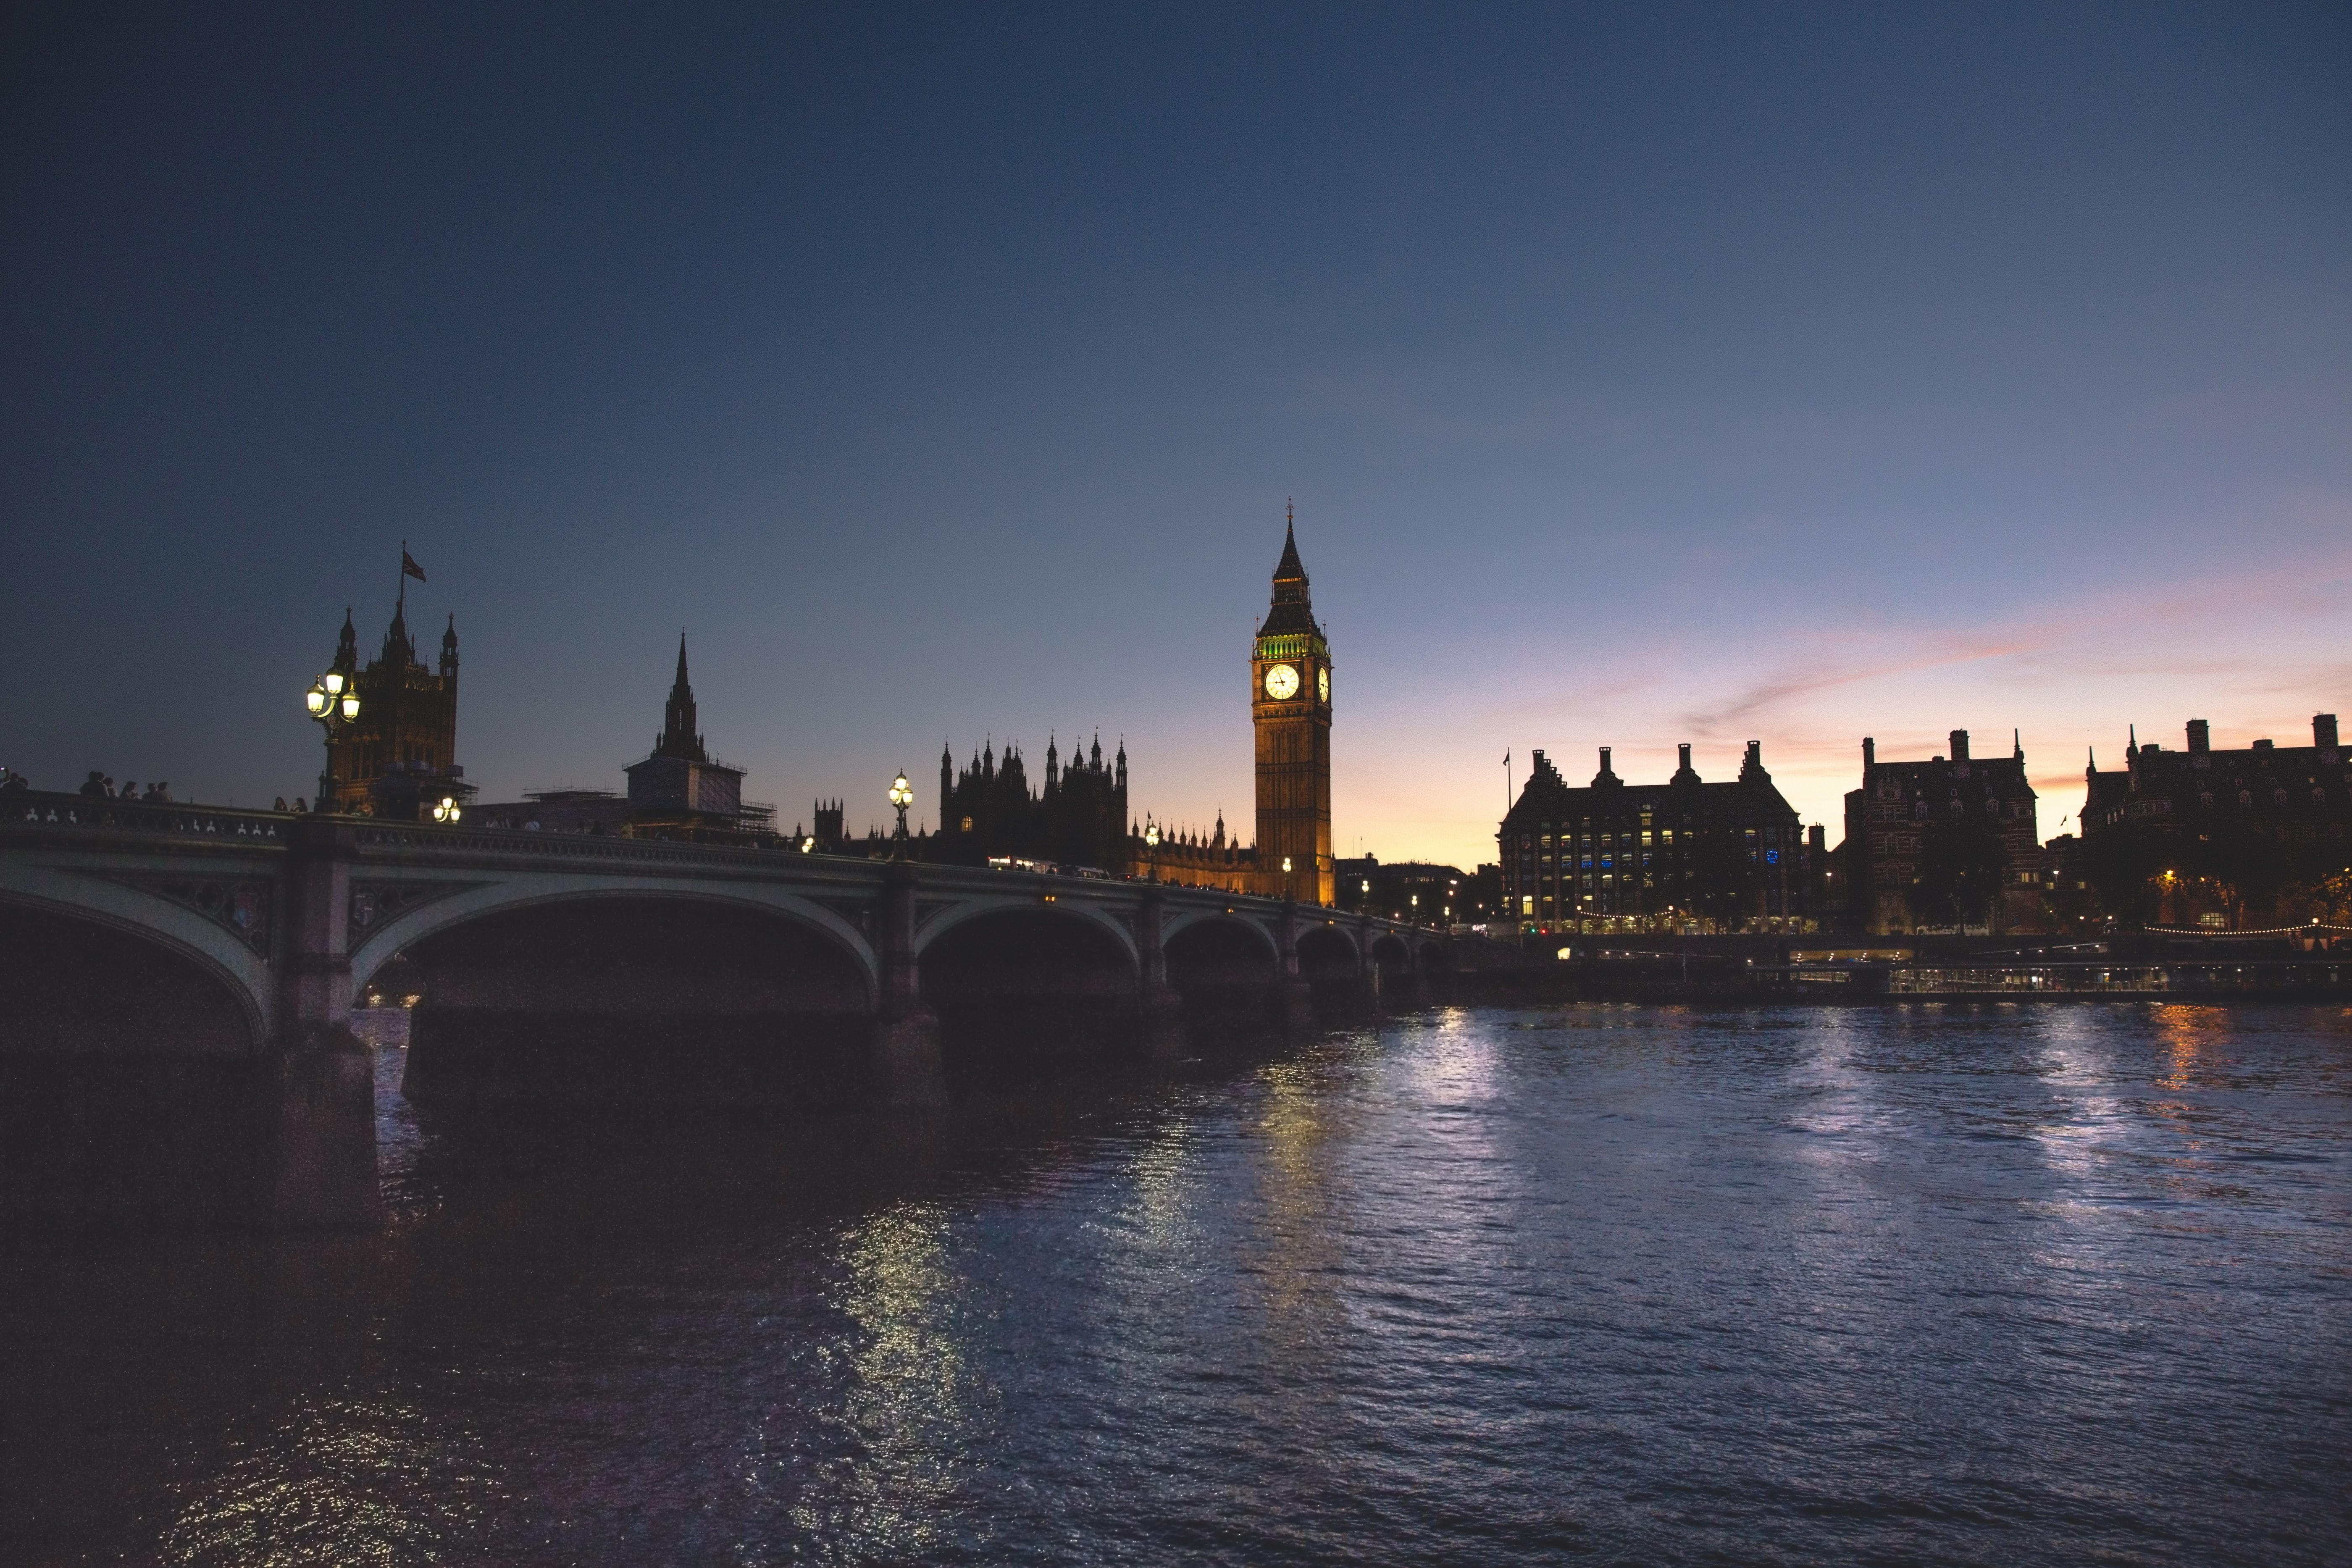 Shot of Westminster Bridge, Big Ben, and other landmarks in London shot from the river